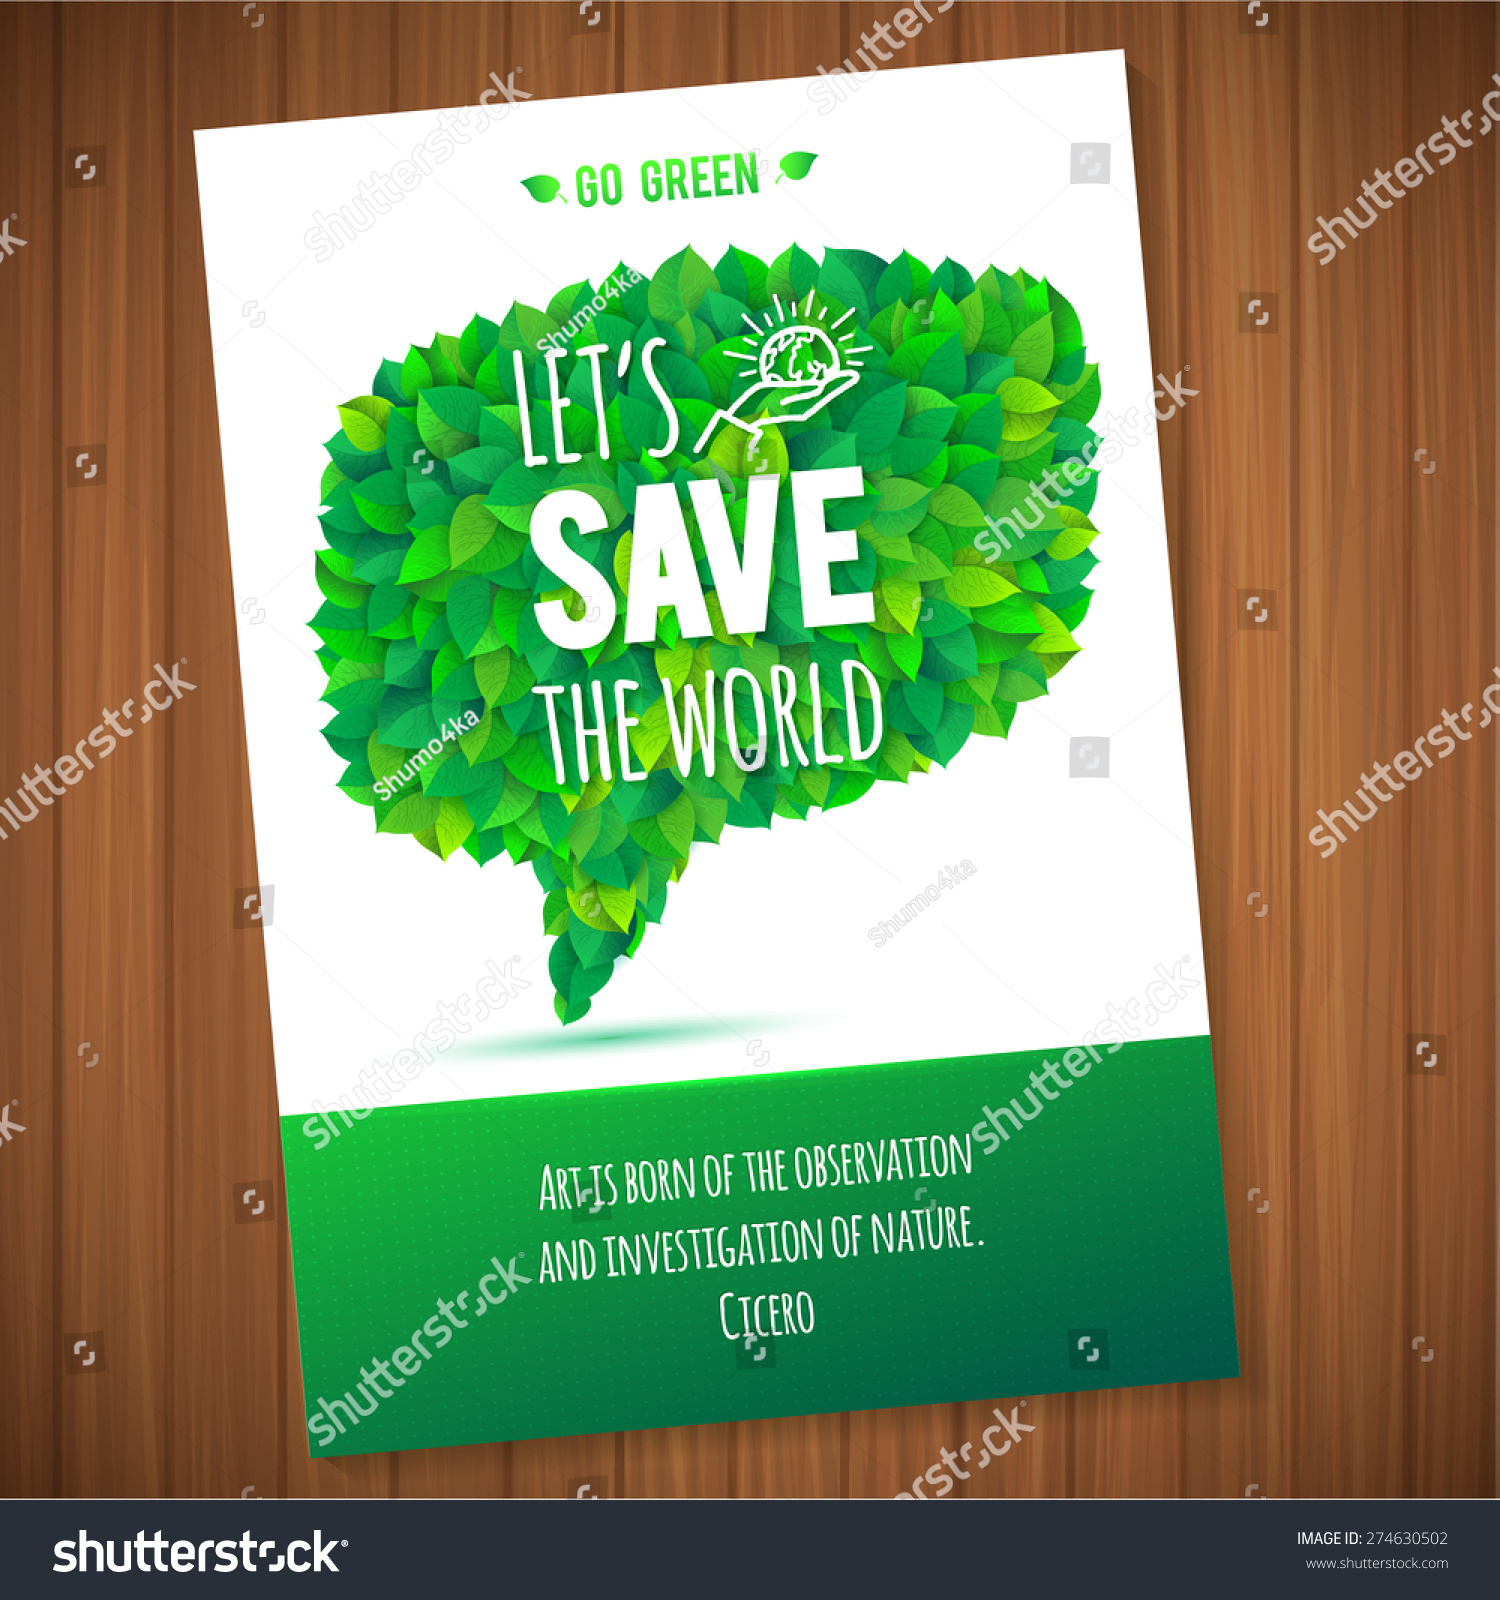 Nature Ecology: Nature Ecology Green Bubble Leaves Concept Stock Vector